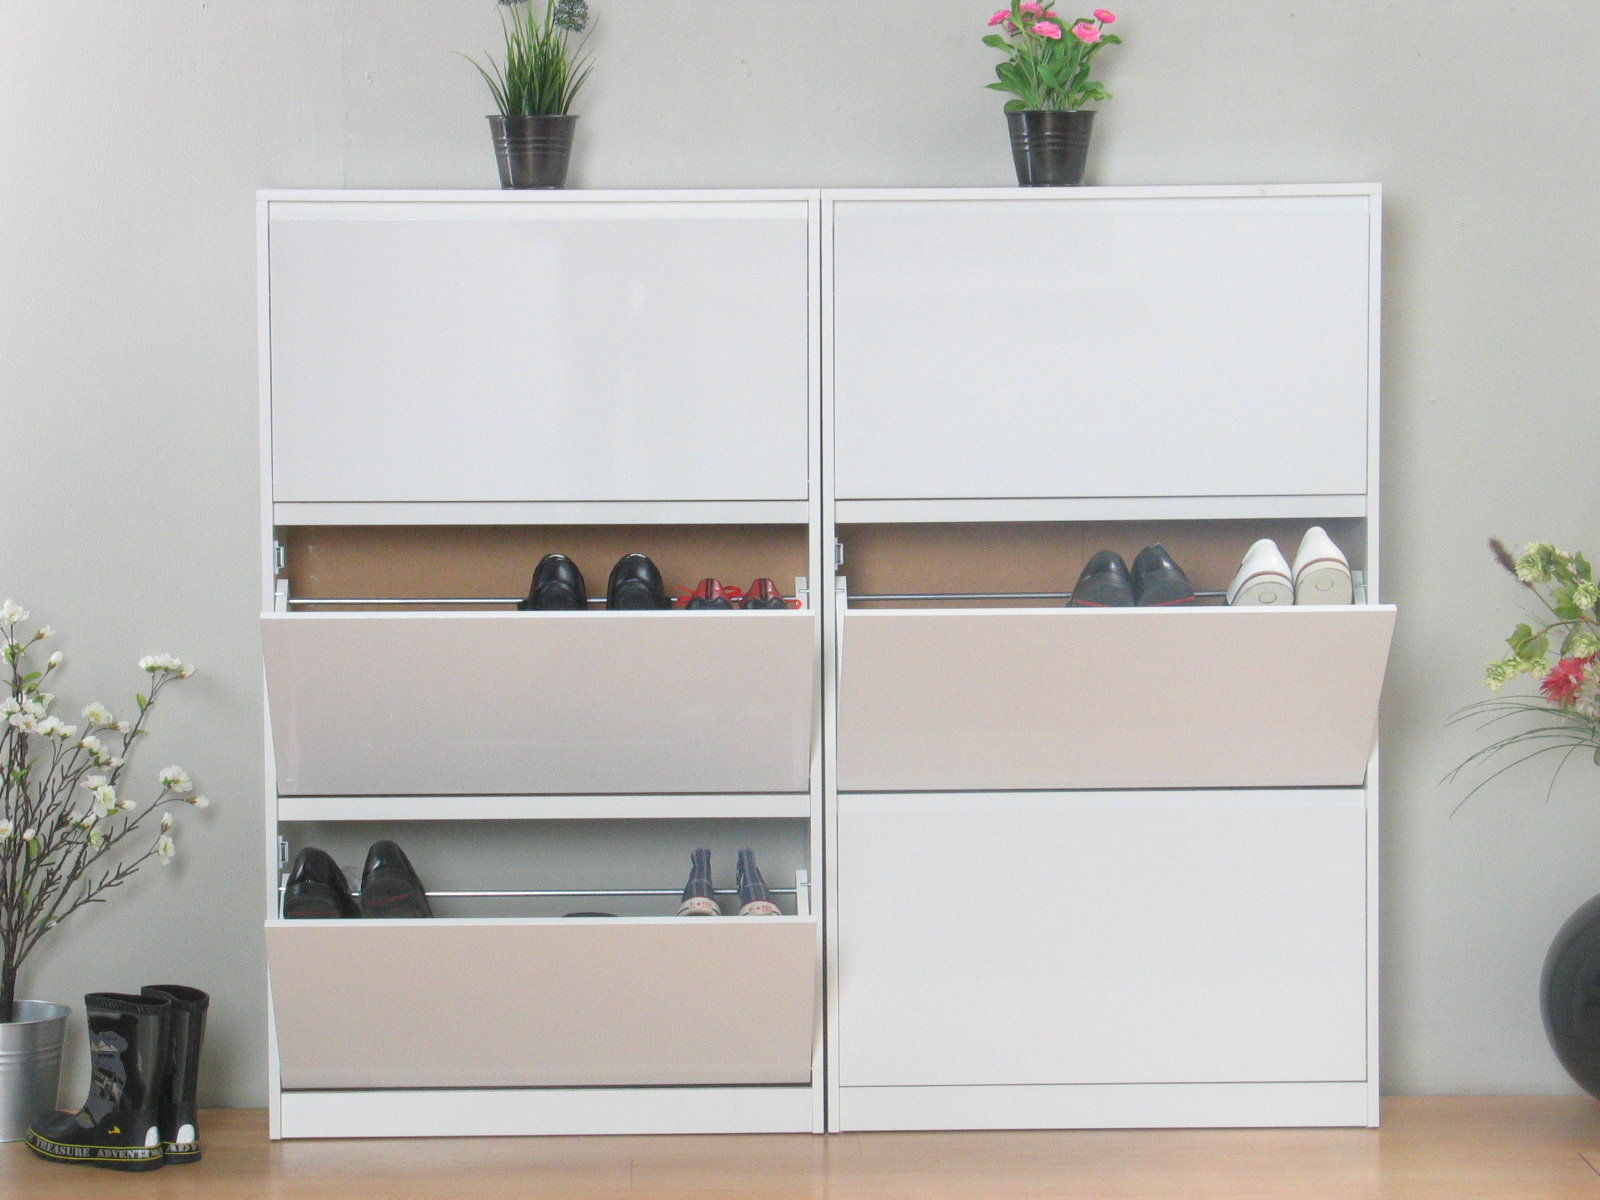 2x schuhschrank light schuhkipper schuhregal flur dielen schrank weiss hochglanz ebay. Black Bedroom Furniture Sets. Home Design Ideas